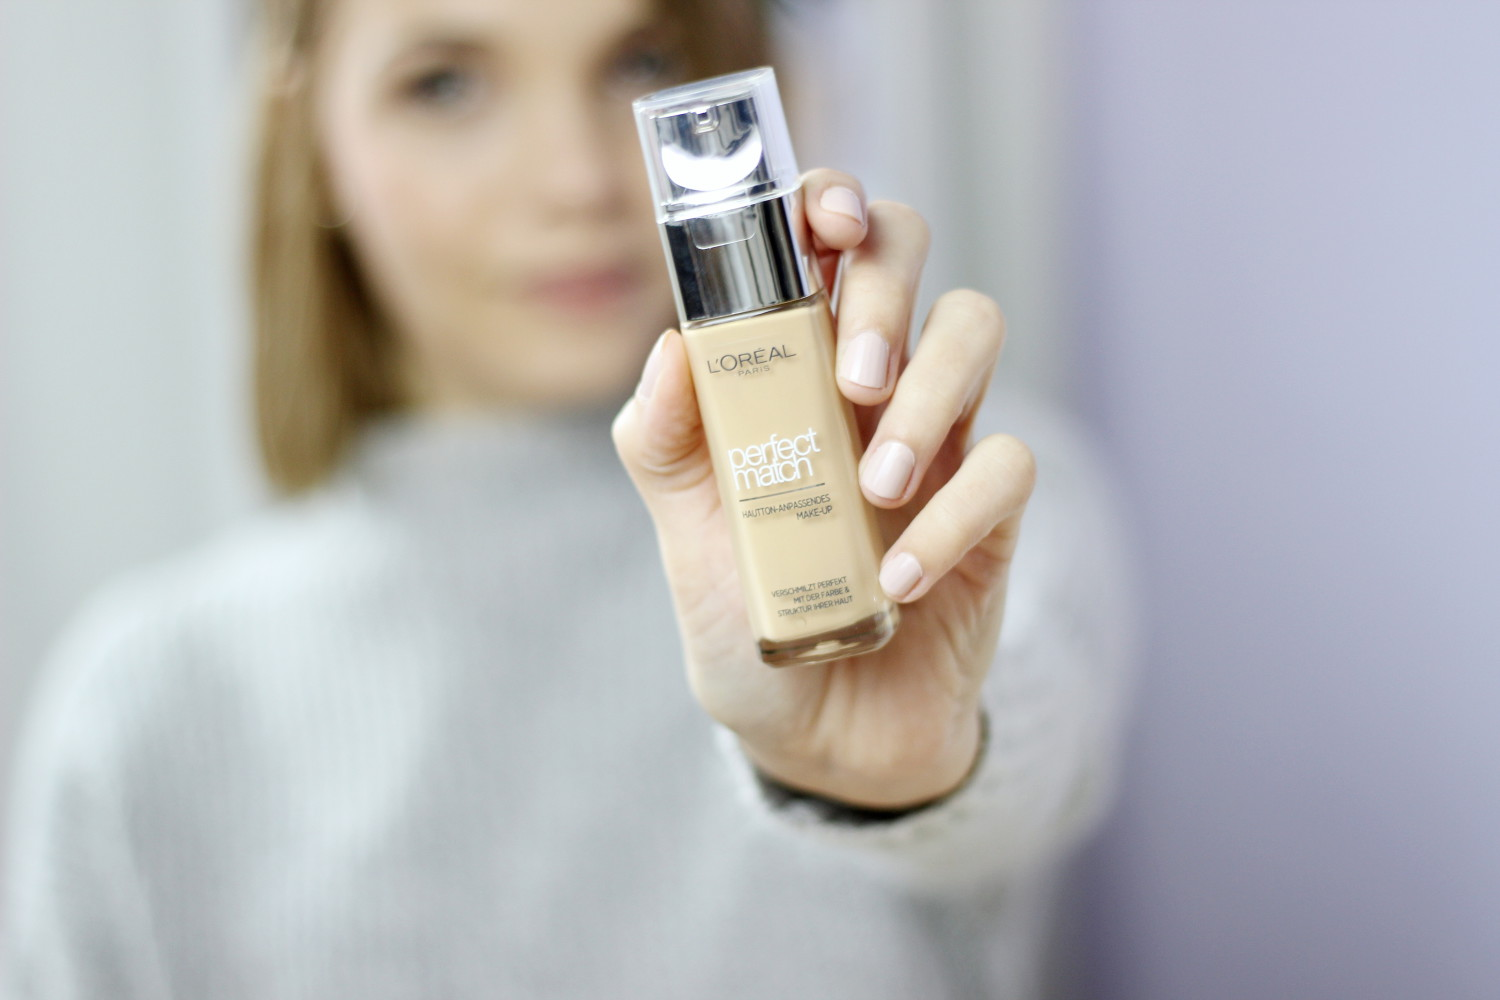 bezaubernde nana, bezauberndenana.de, fashionblog, beautyblog, germany, deutschland, beauty, kostmetik, make up, L'Oréal Perfect Match, mein perfect match, loreal perfect match test, erfahrung, review, rose beige, golden beige